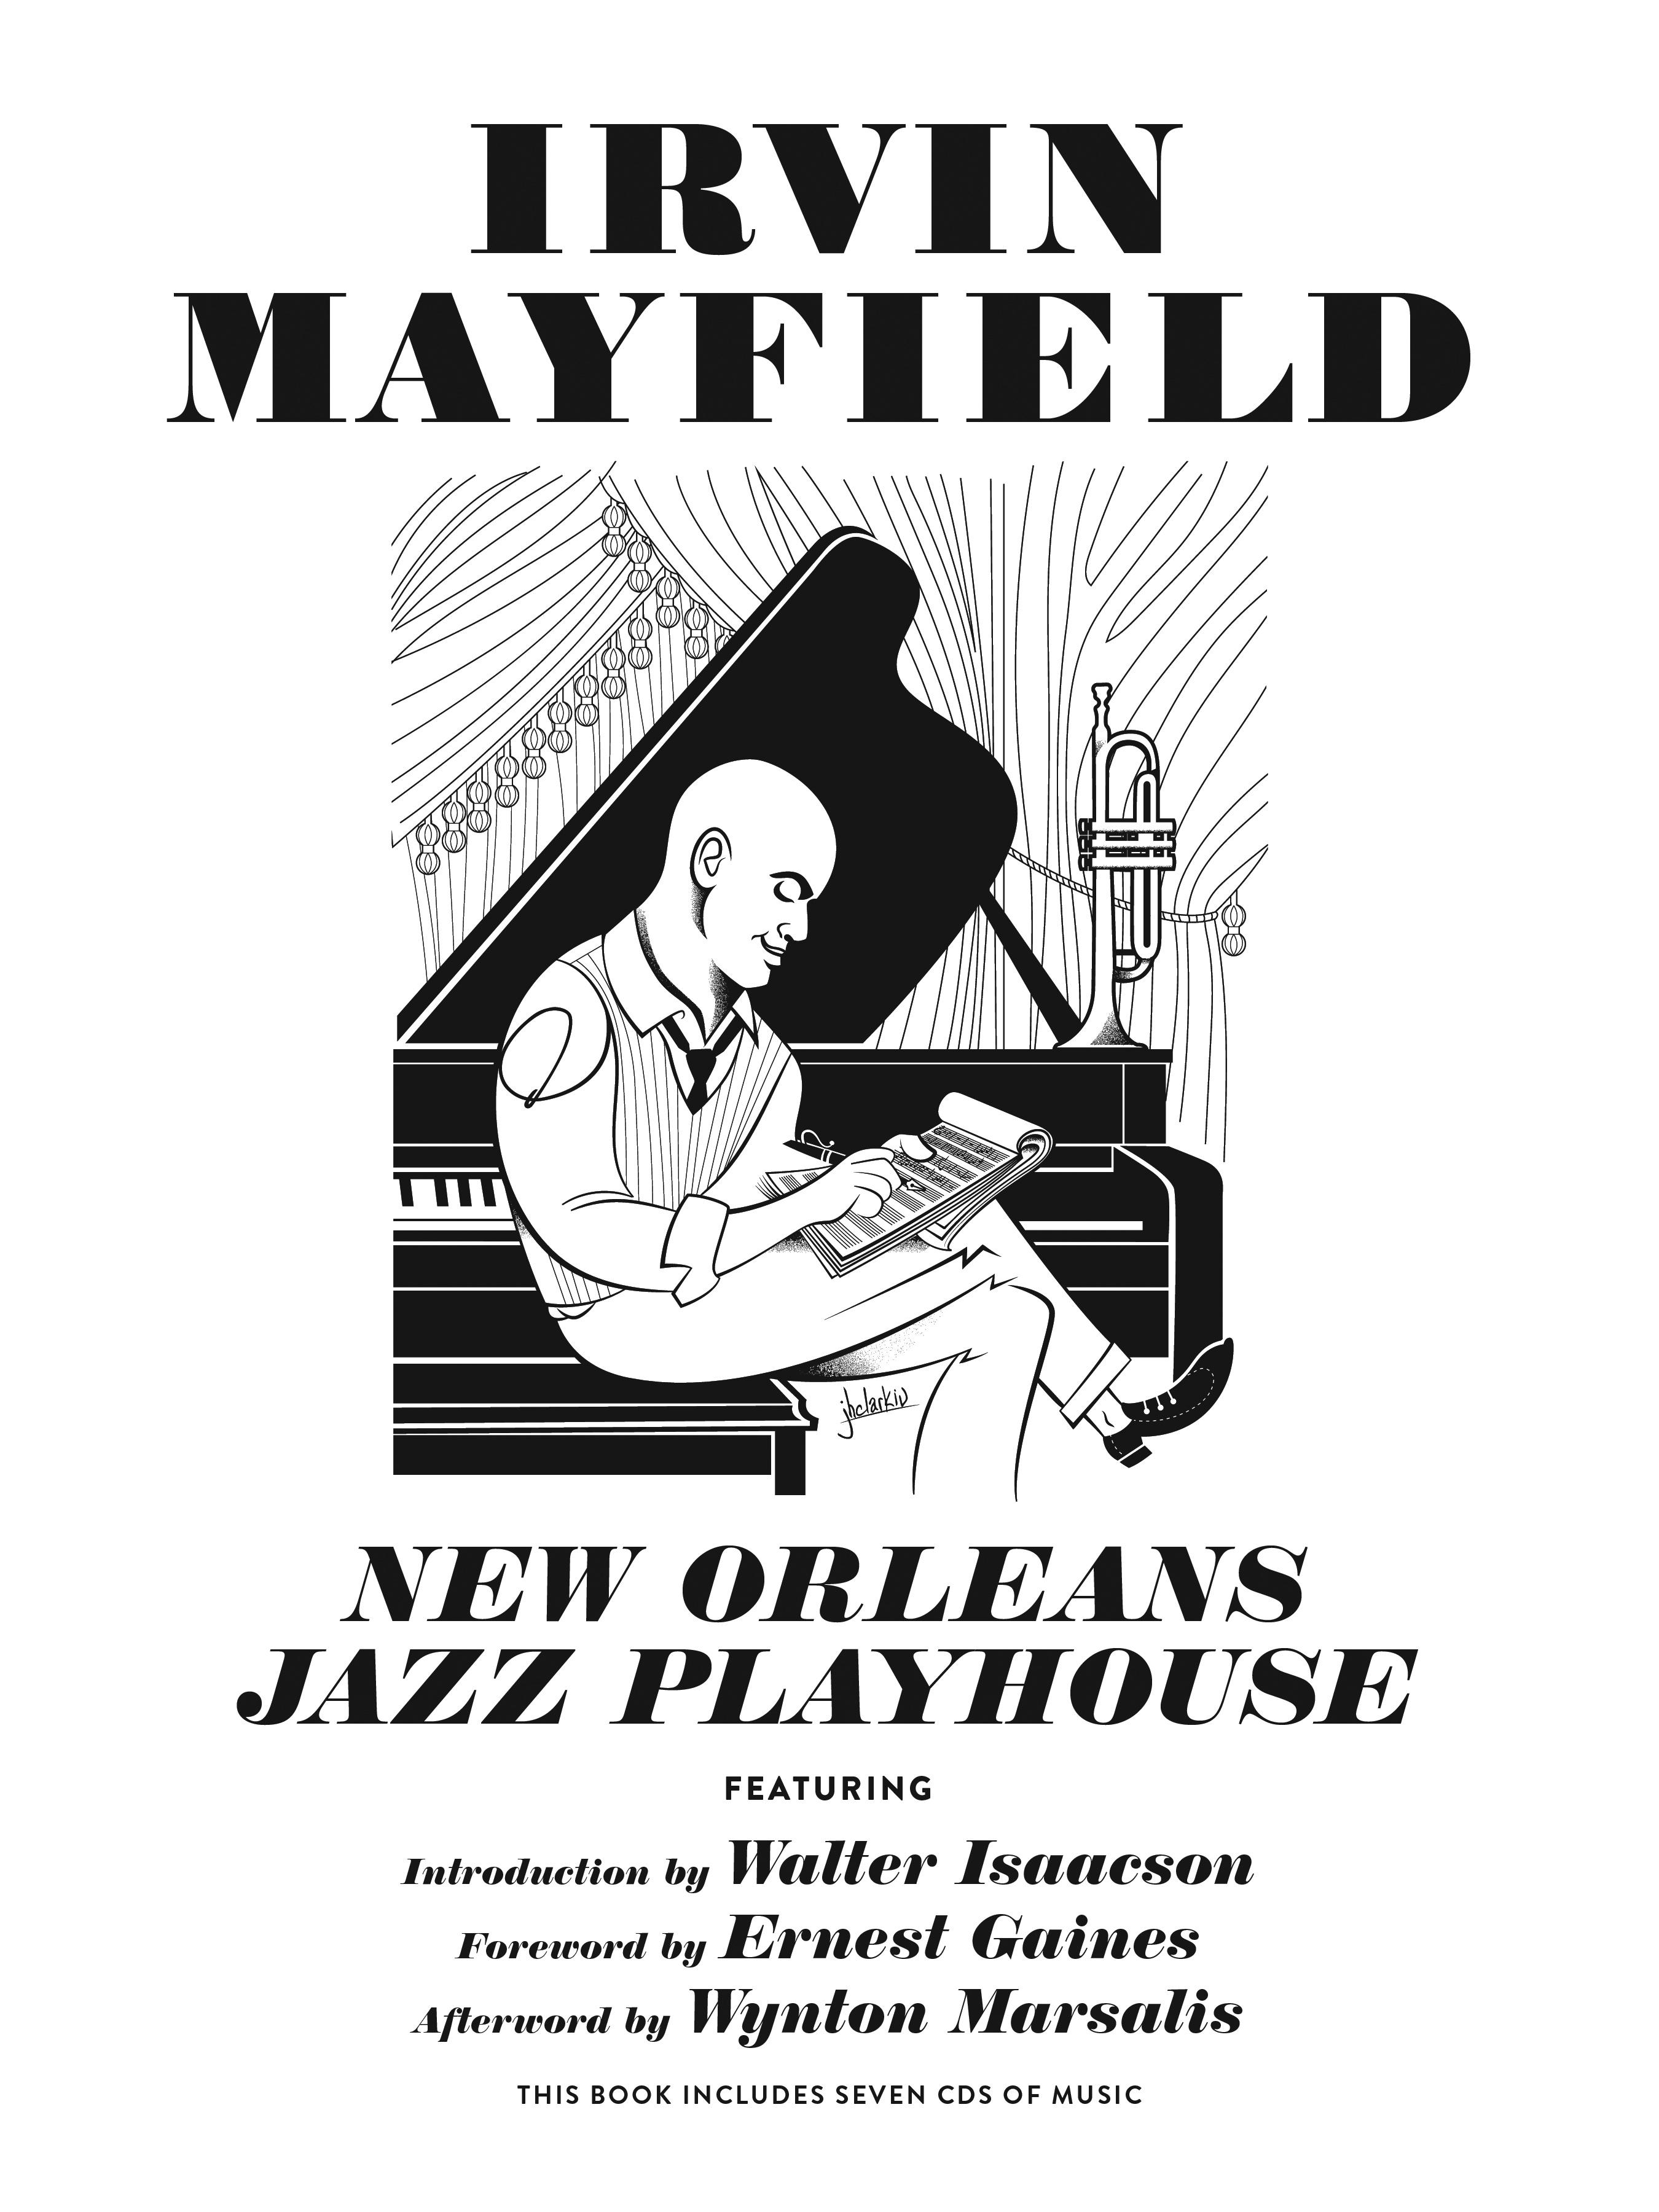 New Orleans Jazz Playhouse by Irvin Mayfield Octavia Books